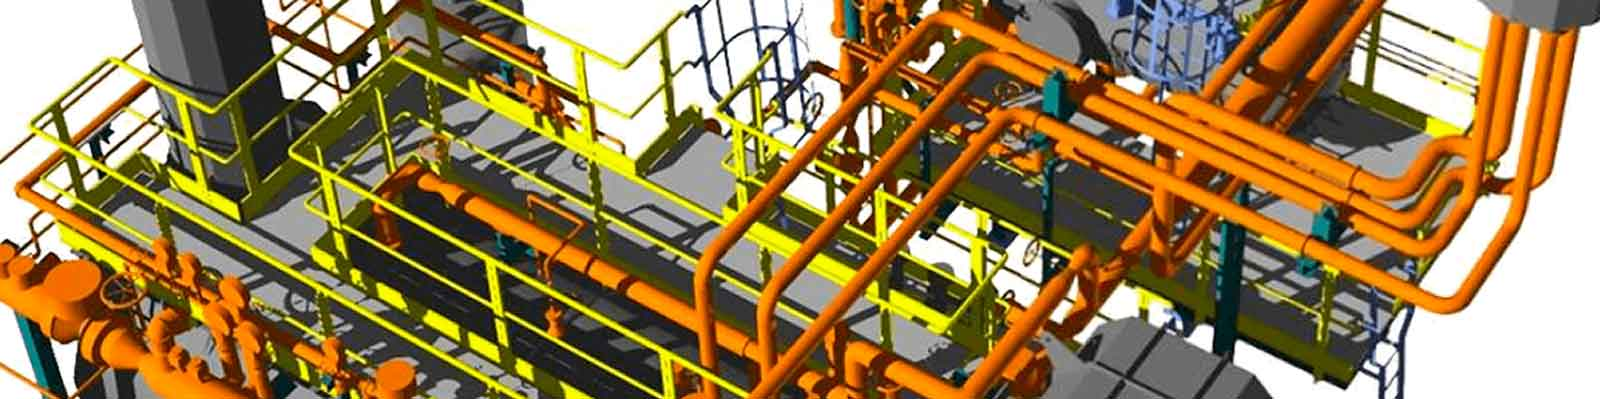 CADE plant engineering services: Basic & Detail Engineering​: detailed 3D modeling